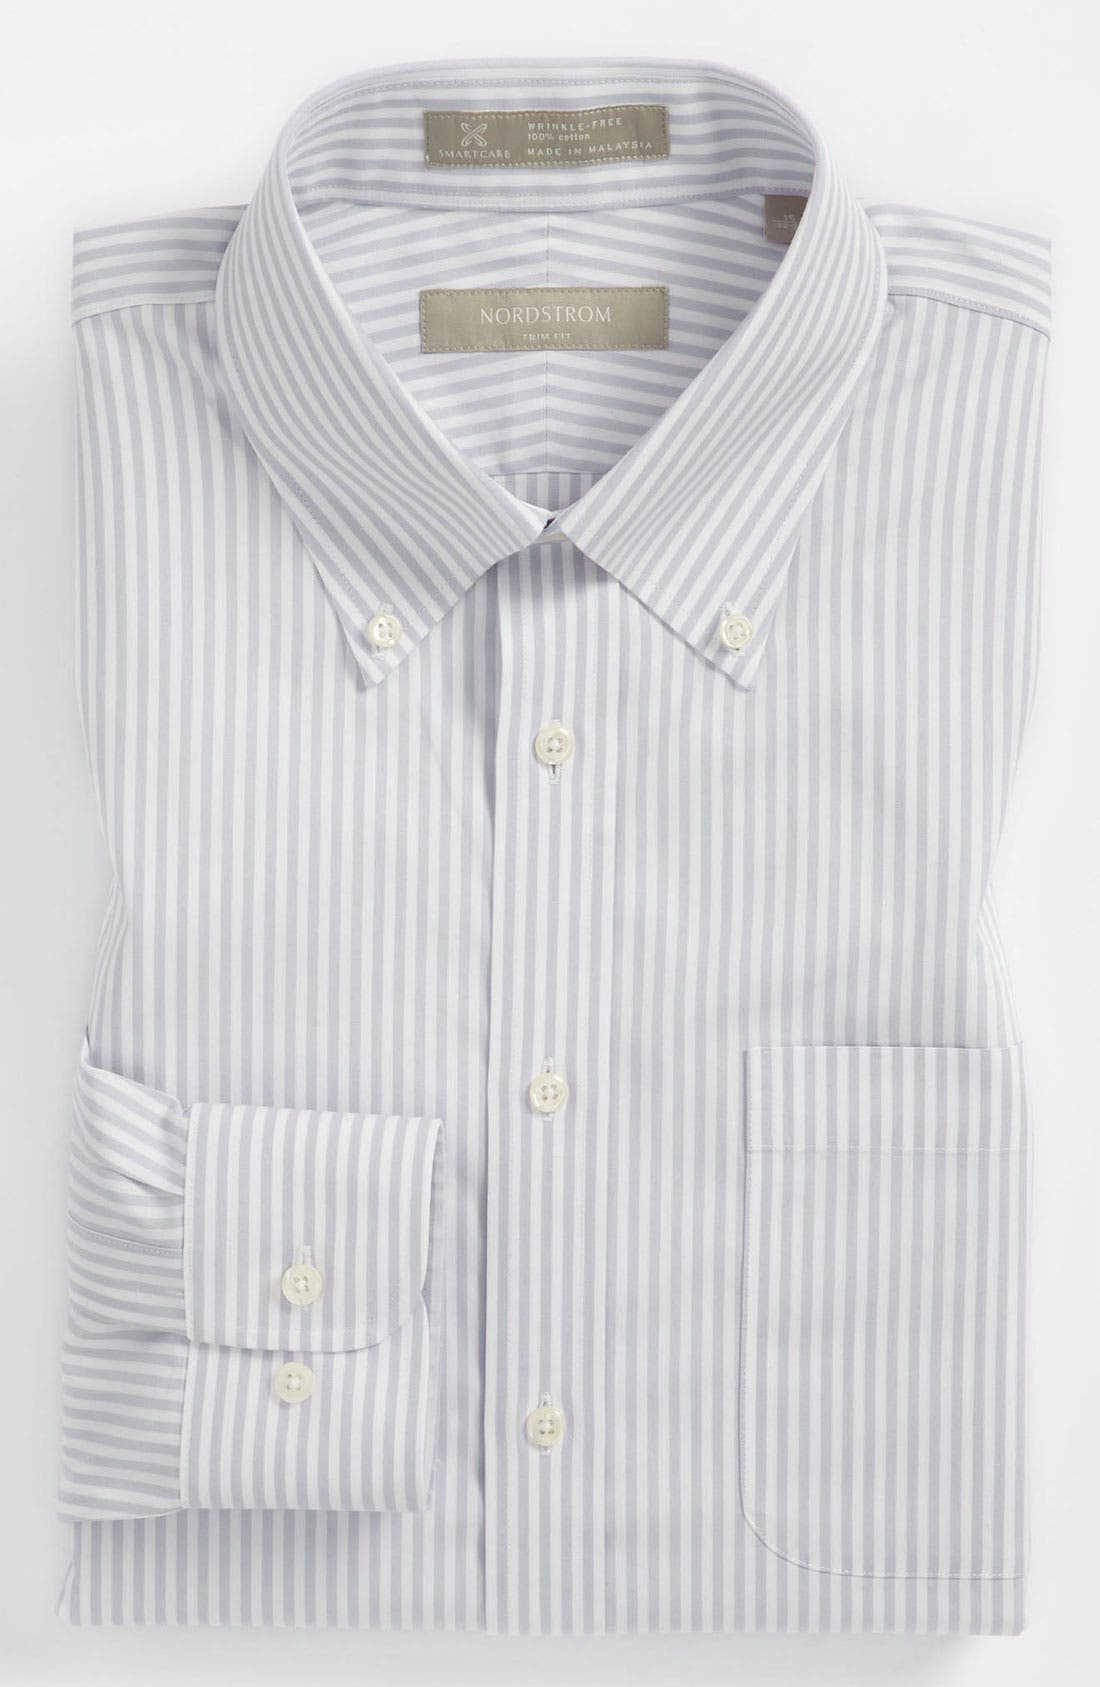 Main Image - Nordstrom Men's Shop Smartcare™ Wrinkle Free Trim Fit Stripe Dress Shirt